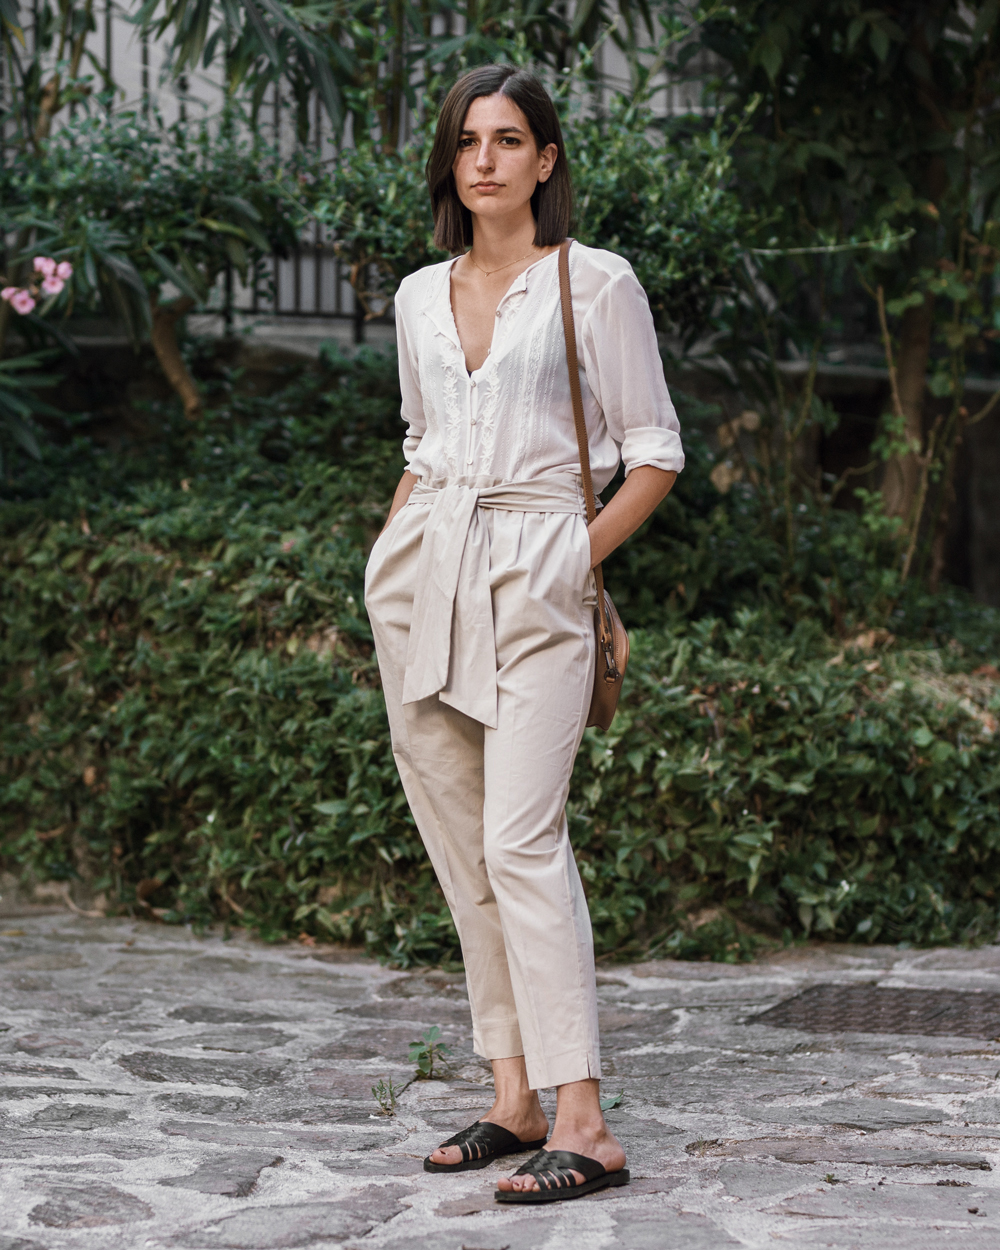 An easy southern french outfit to copy